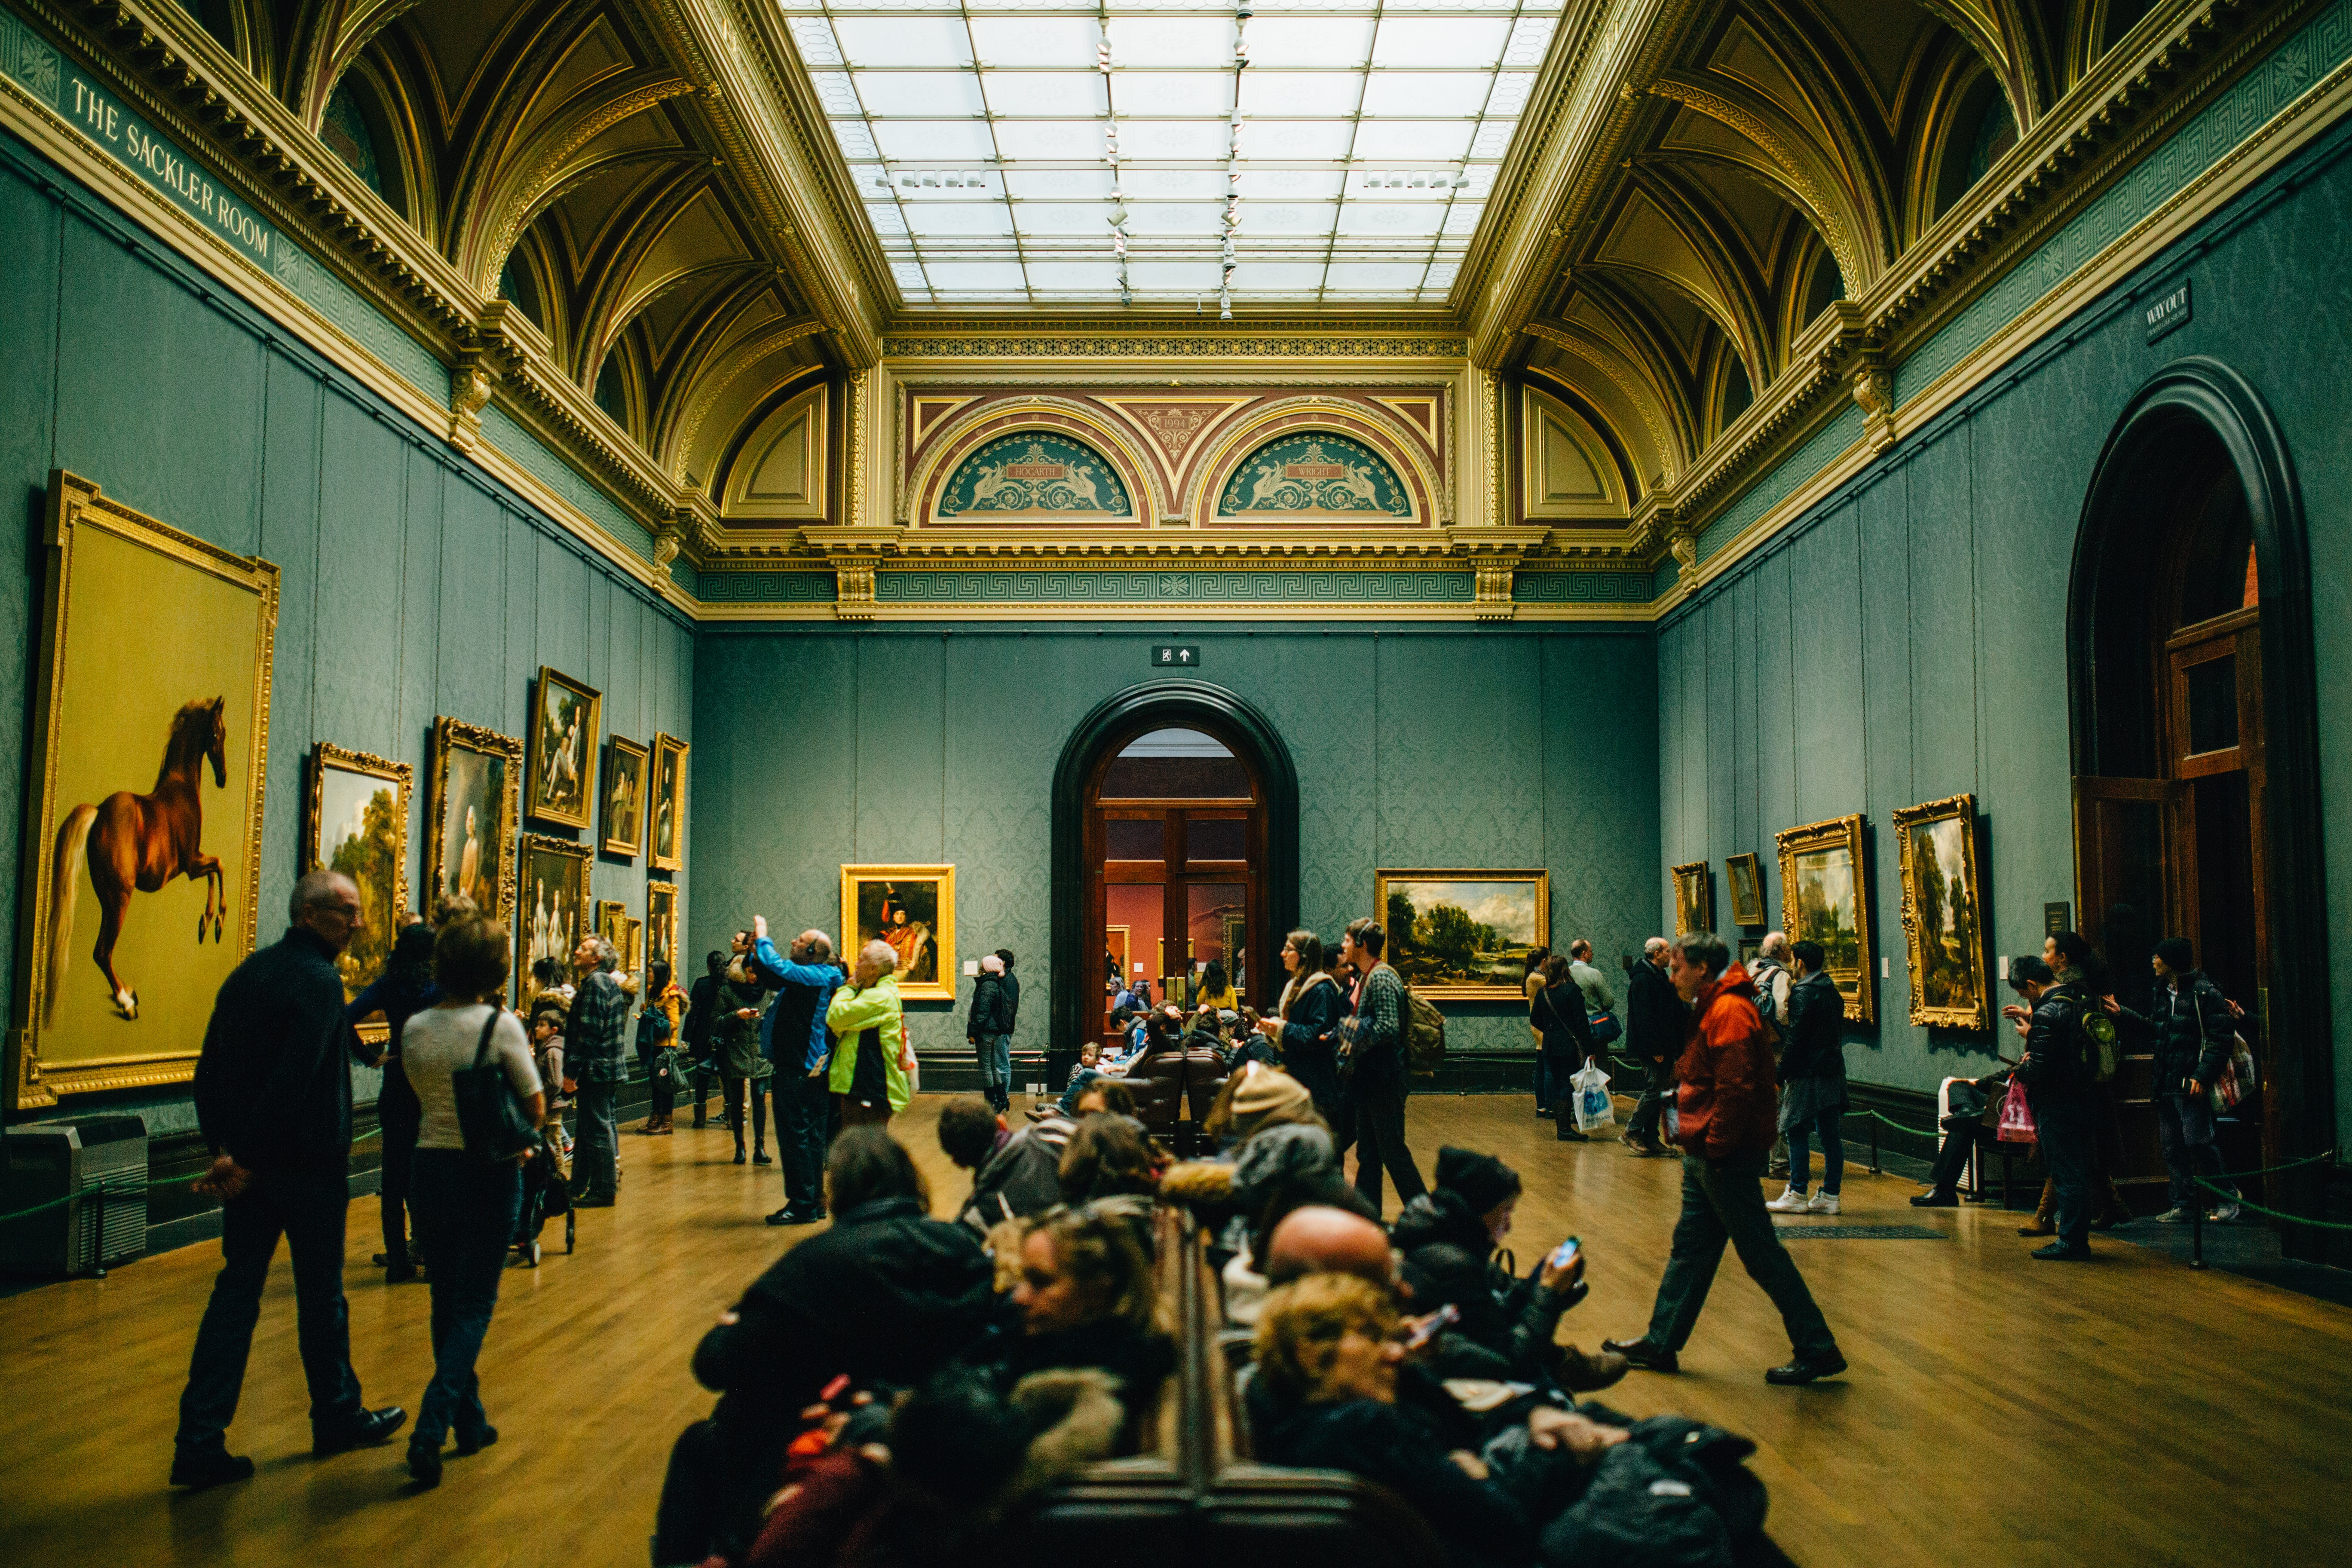 People Walking on Wooden Floor Inside Green Walled Building, People, Tourists, Viewing, Wooden floors, HQ Photo